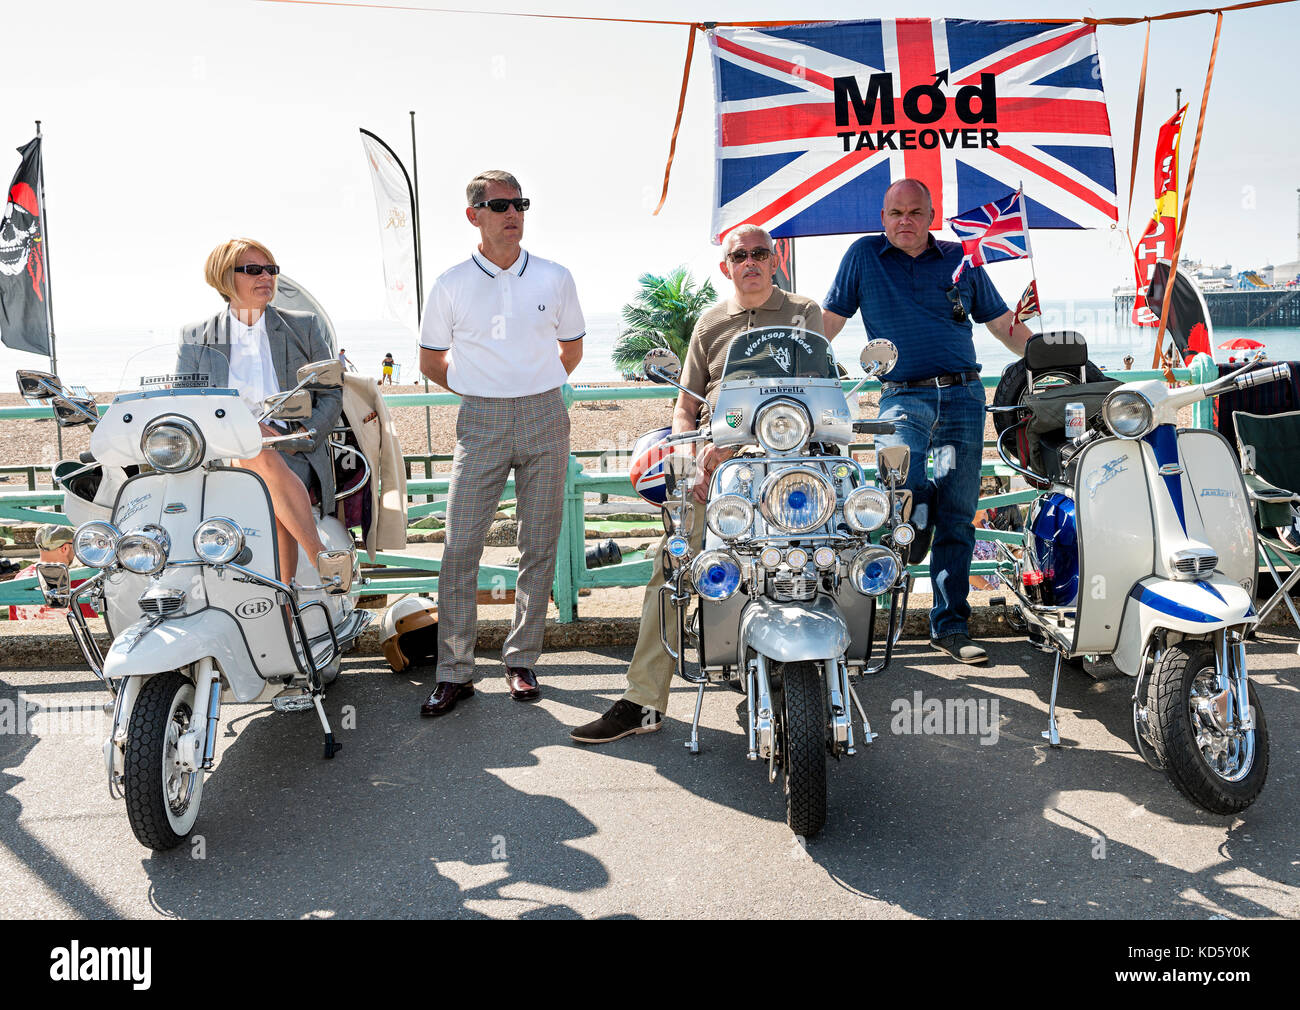 Mods and their scooters at Brighton Mod Rally August Bank Holiday - Stock Image